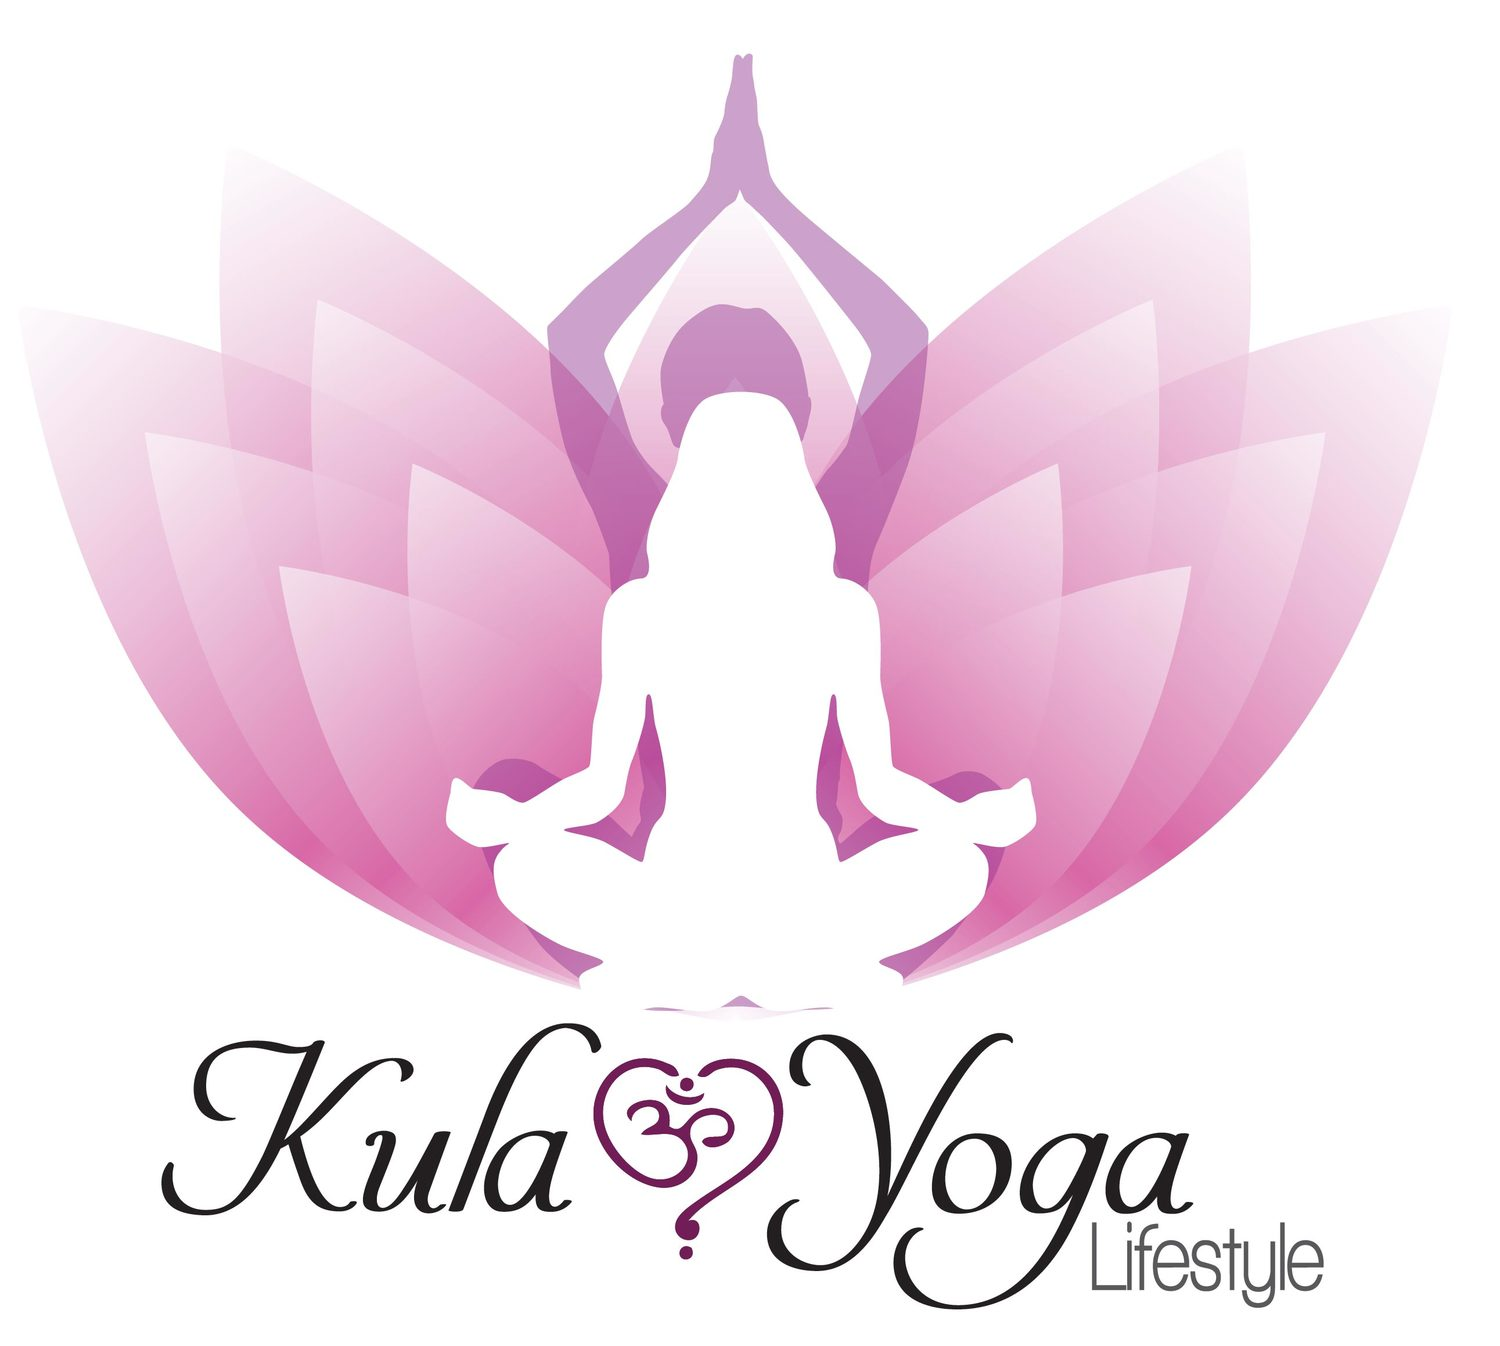 Kula Yoga Lifestyle